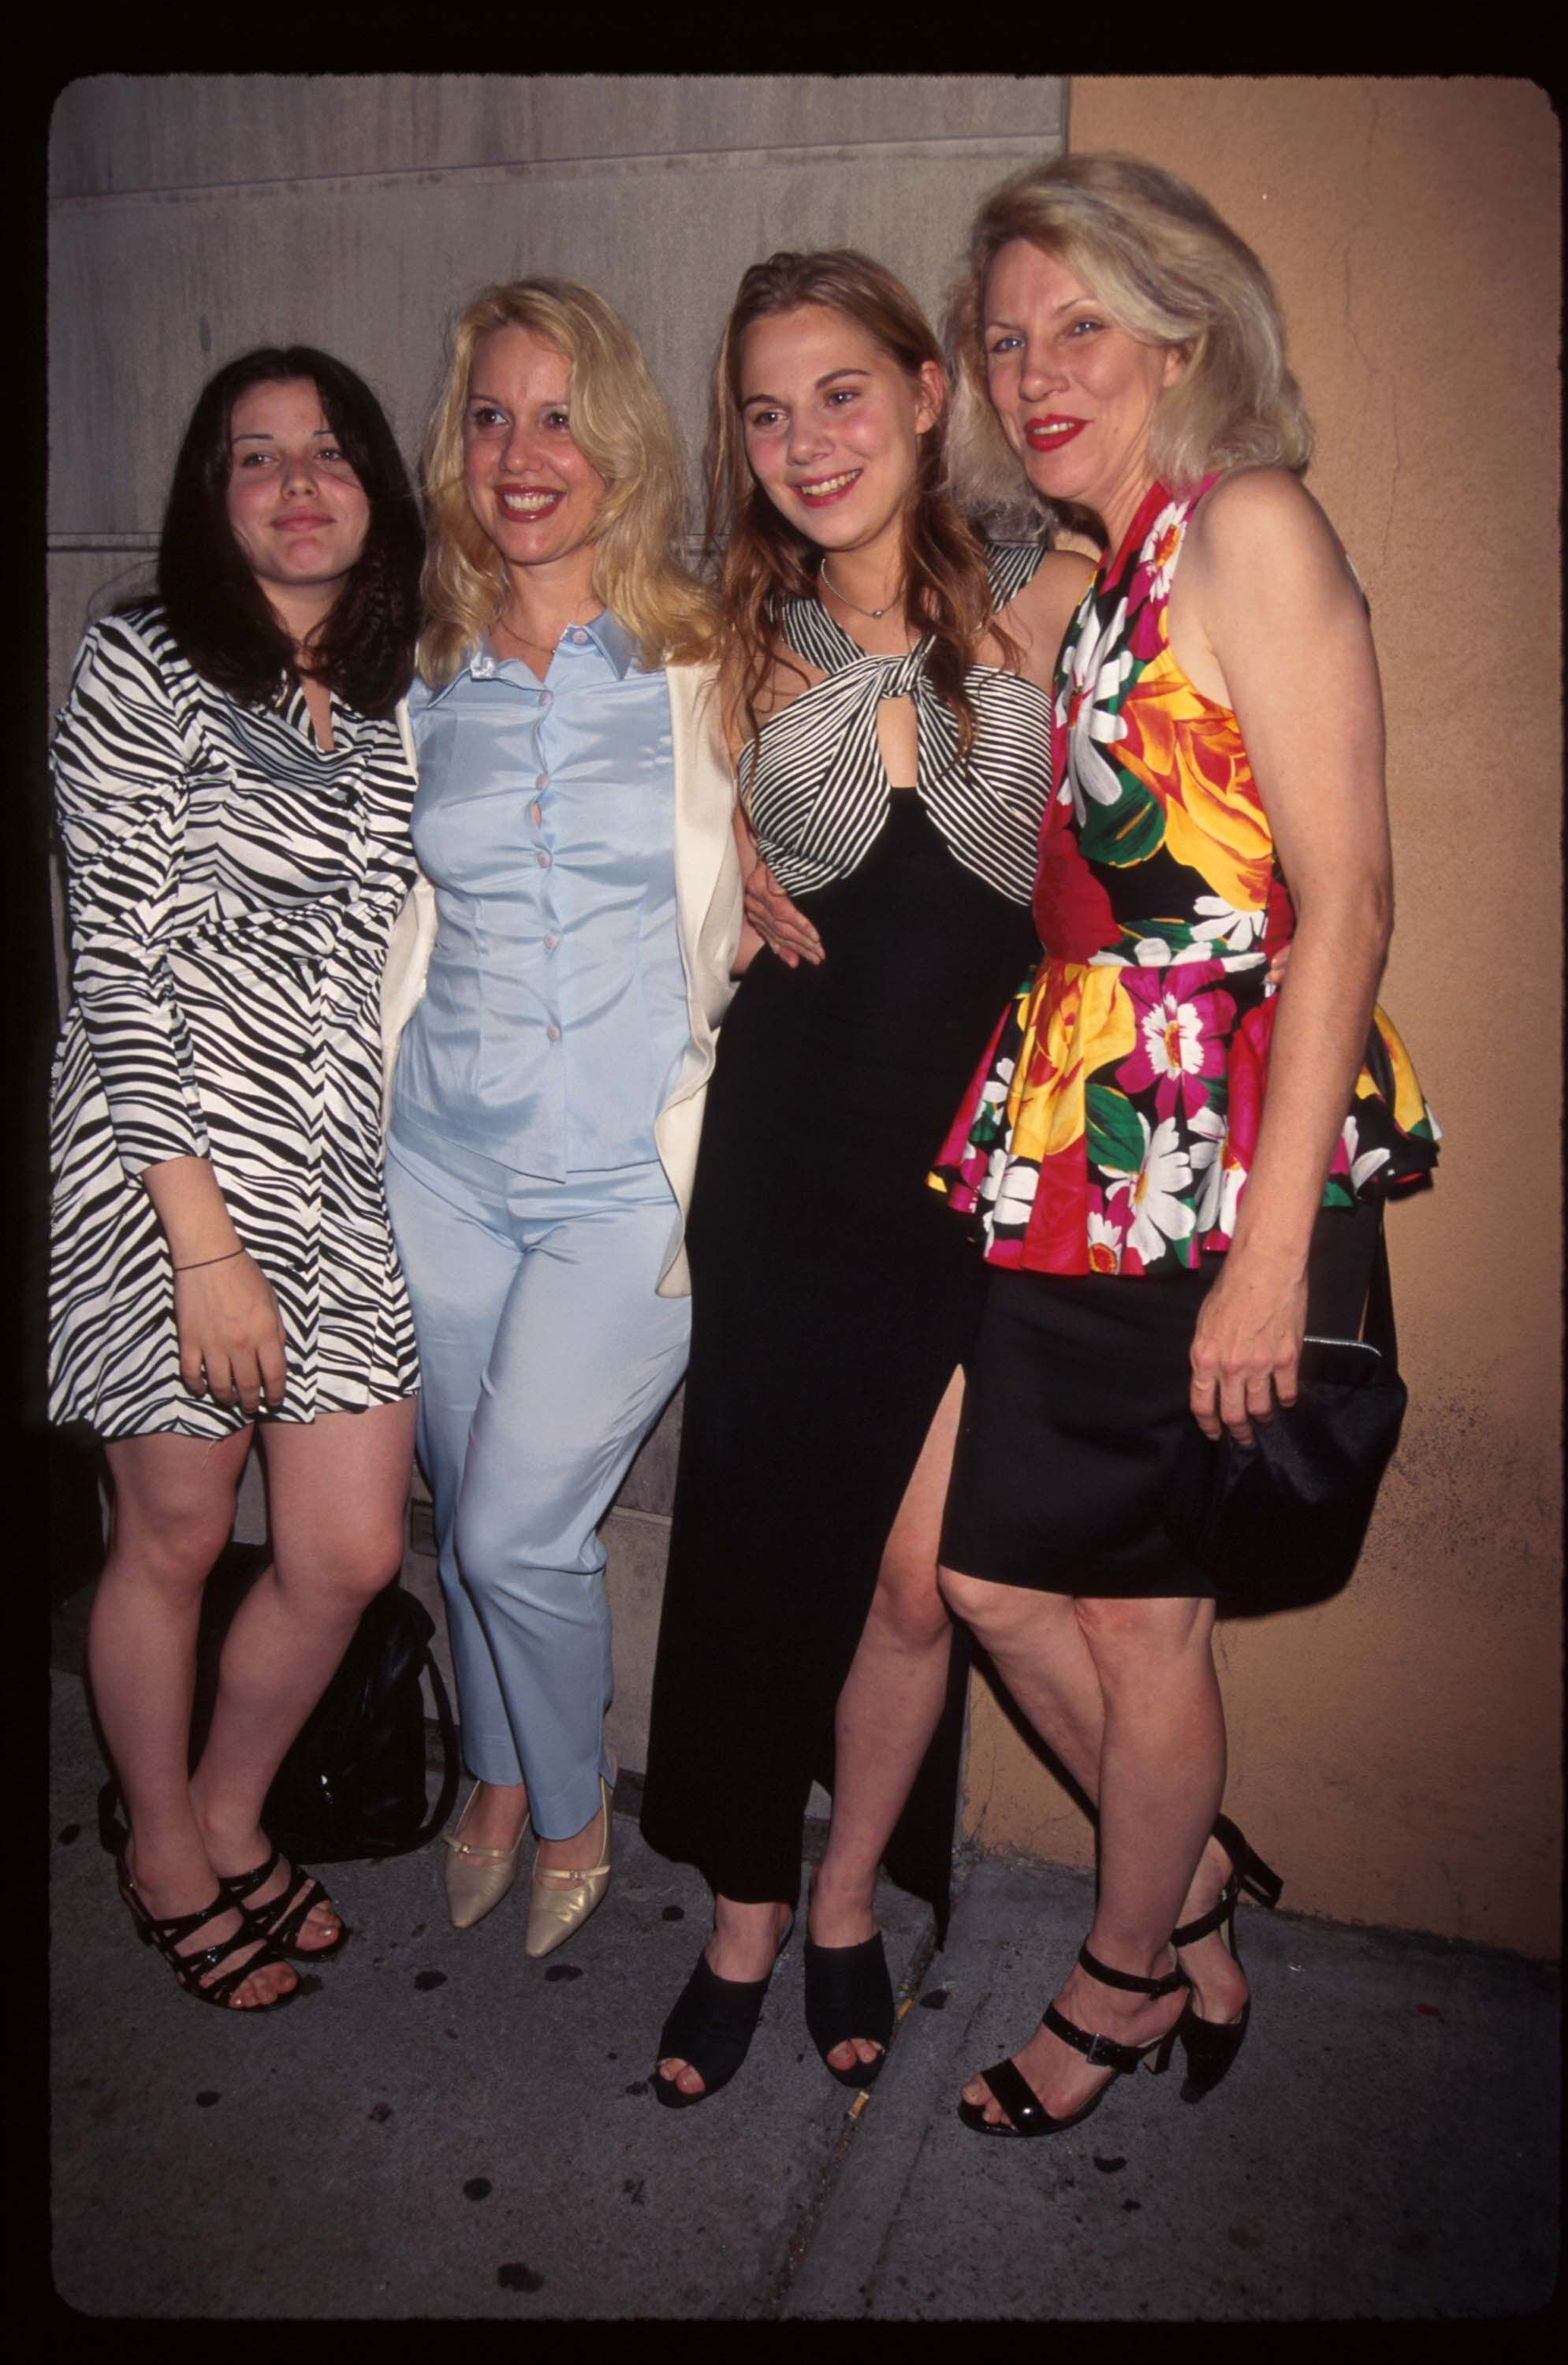 Up-and-coming models Mia Tyler (L) and Stasha Bowie (2nd R) stand with their mothers Cyrinda Foxe (2nd L) and Angie Bowie (R) on July 25, 1996 in New York City. | Source: Getty Images